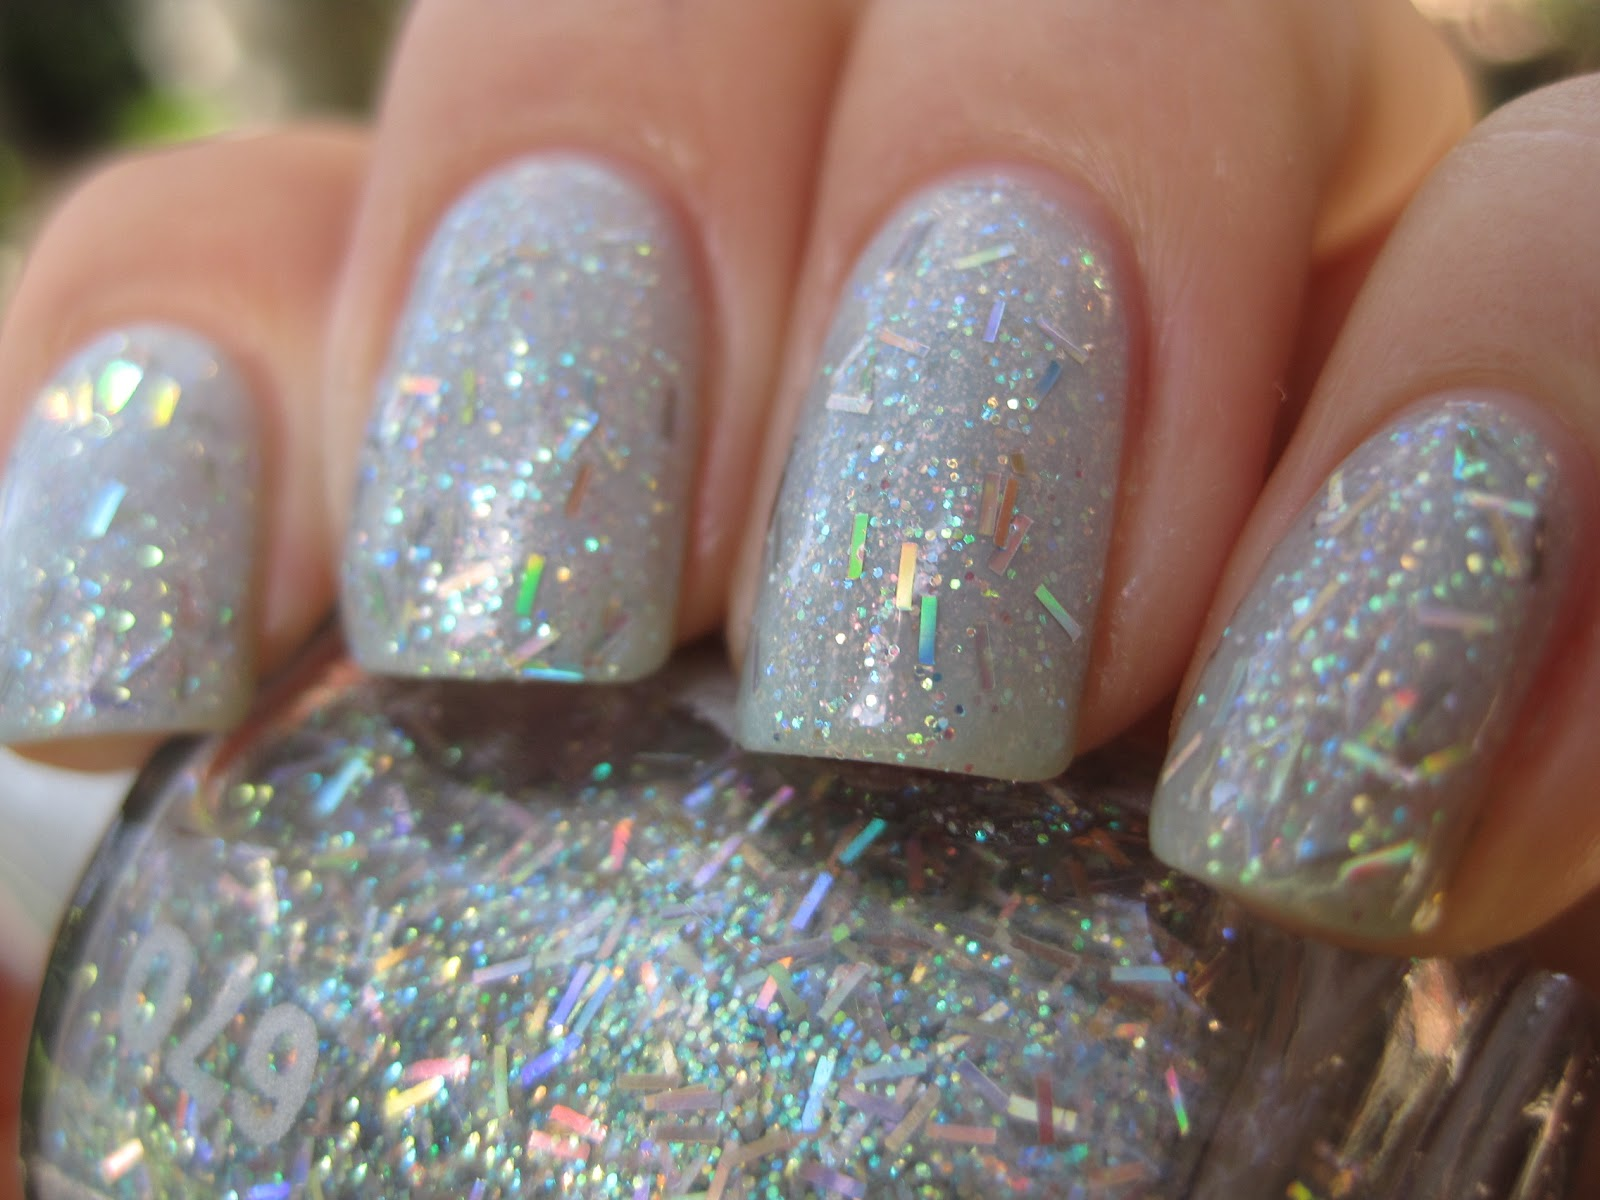 2 coats sinful colors cinderella 1 coat chelsea 670 sprinkles surprises no topcoat in these pictures - Vernis Sinful Colors